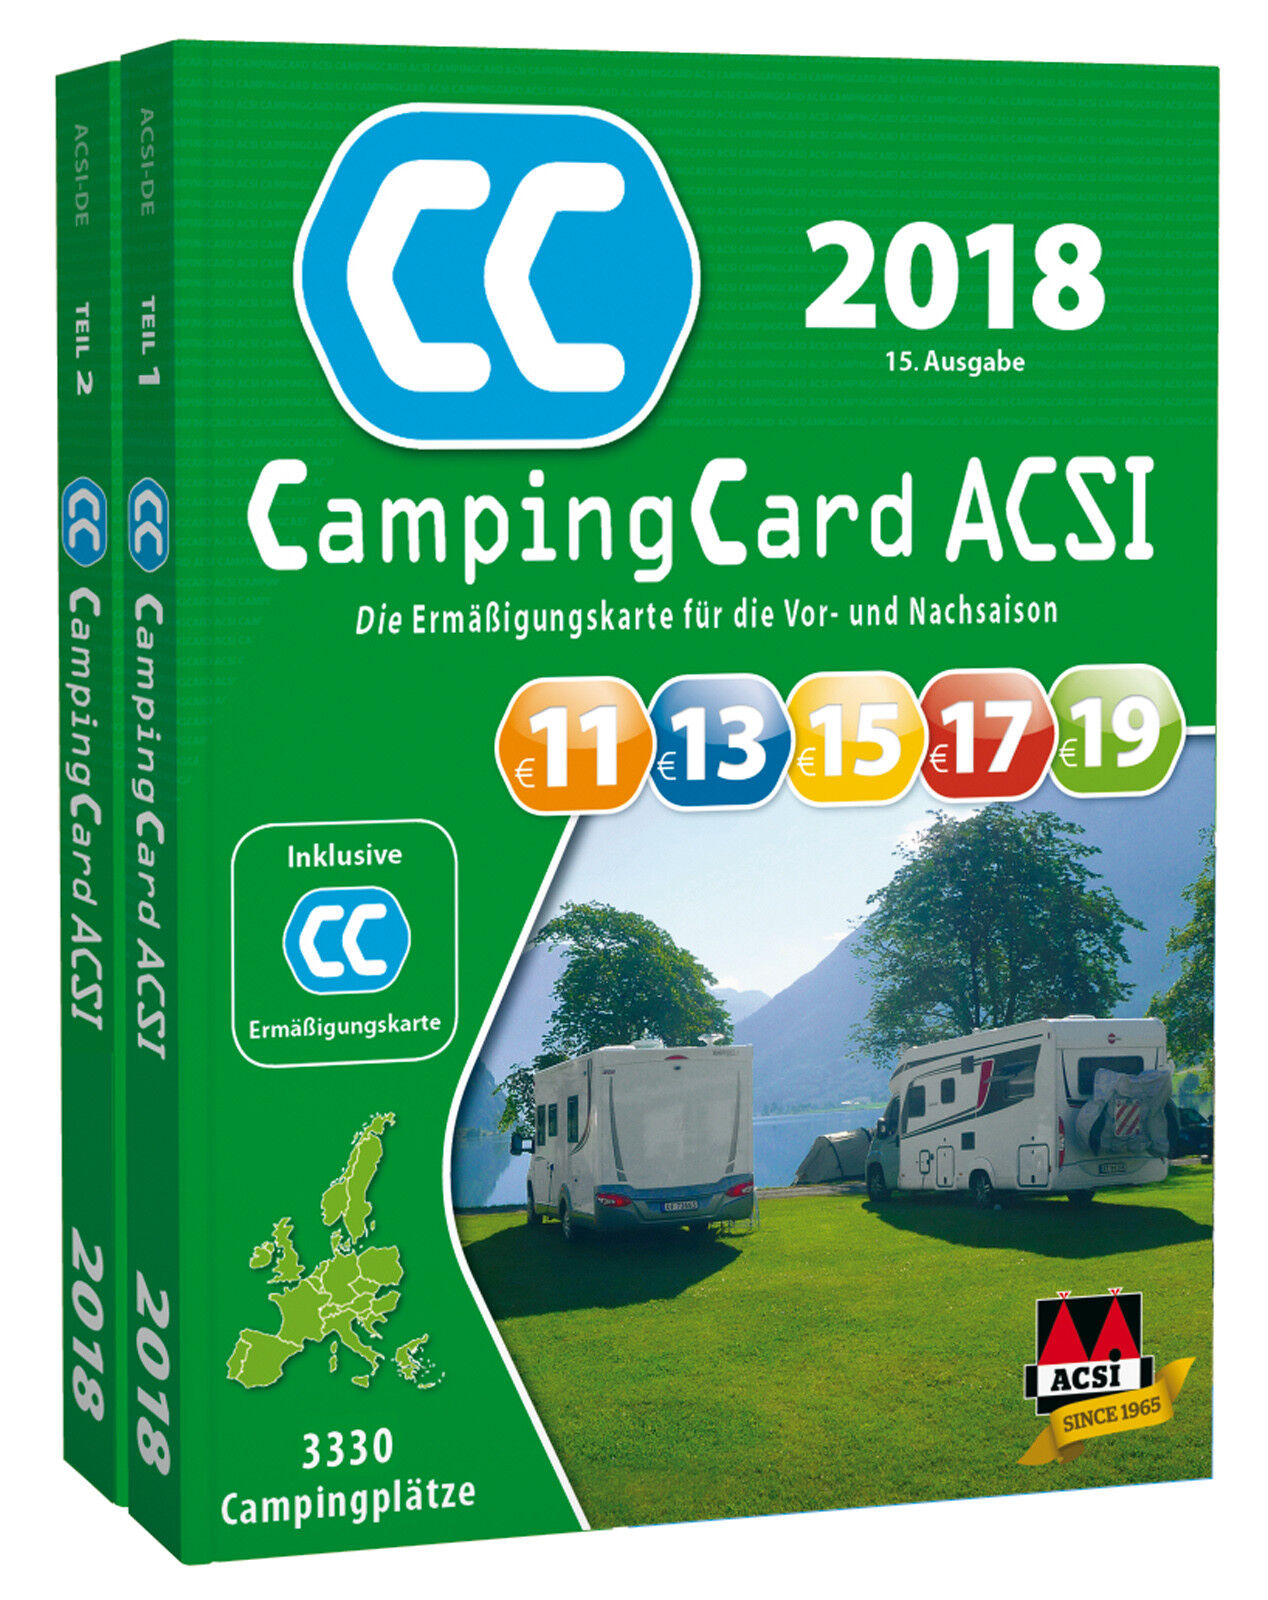 acsi campingcard 2018 campingf hrer inkl erm igungskarte. Black Bedroom Furniture Sets. Home Design Ideas